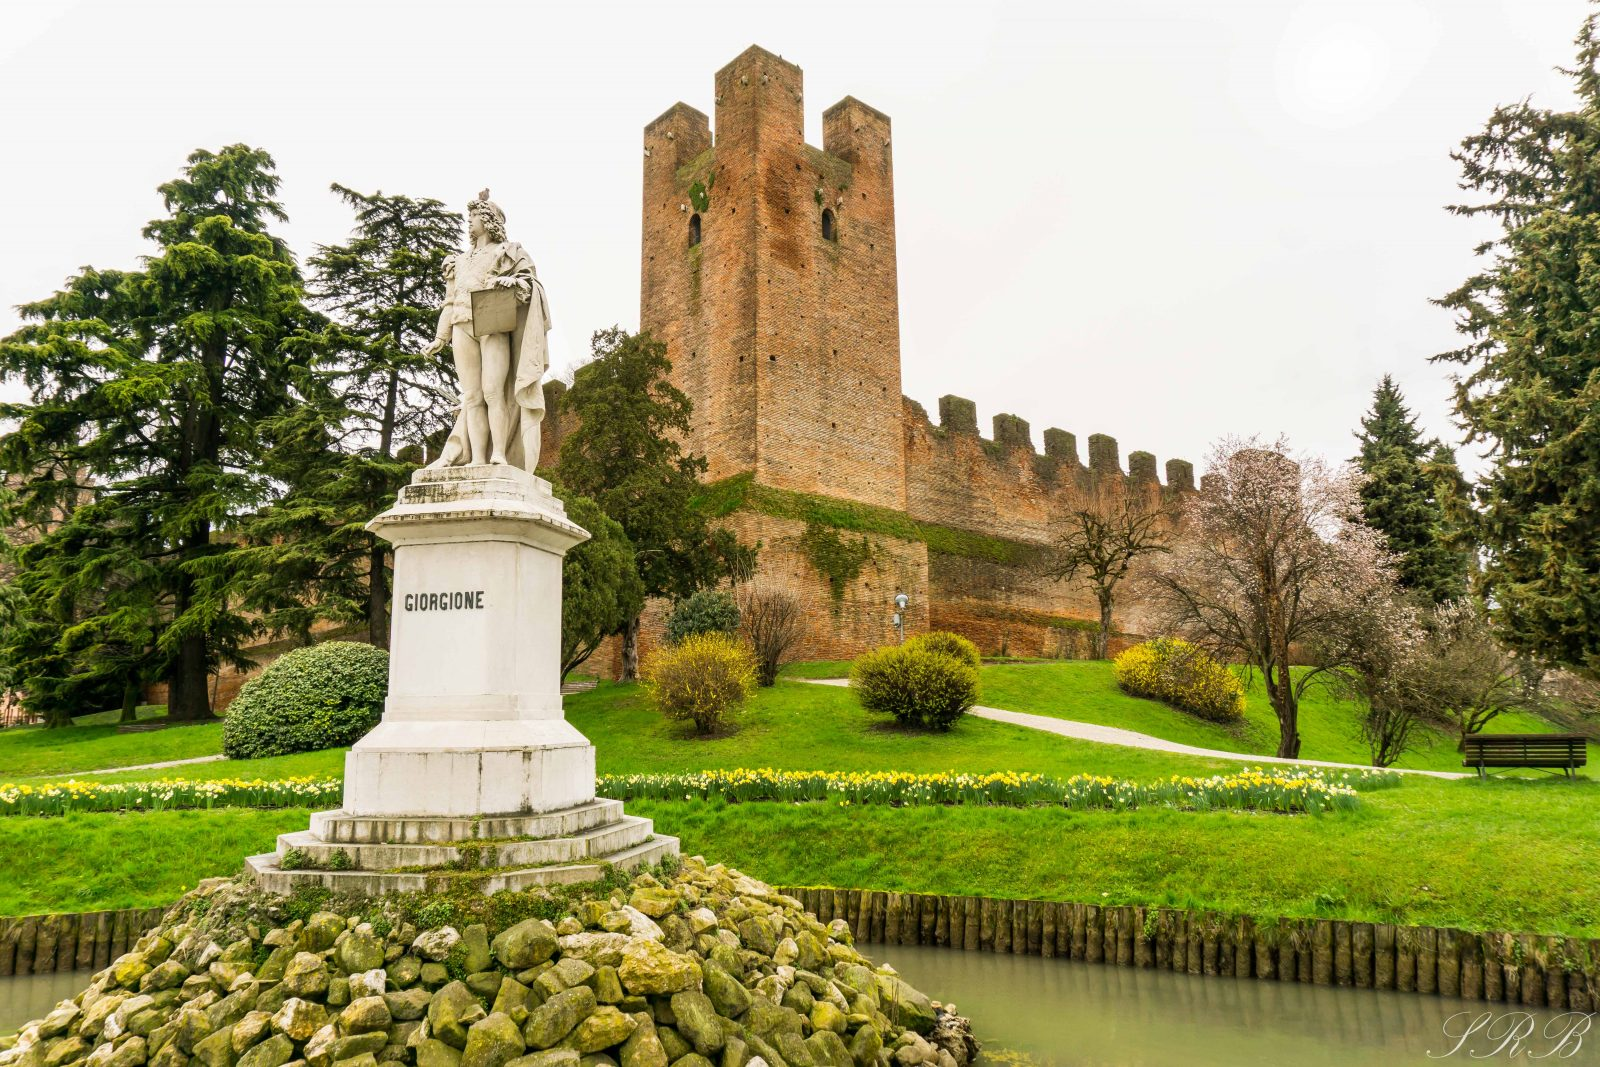 Statue of the founder in front of Castelfranco Veneto